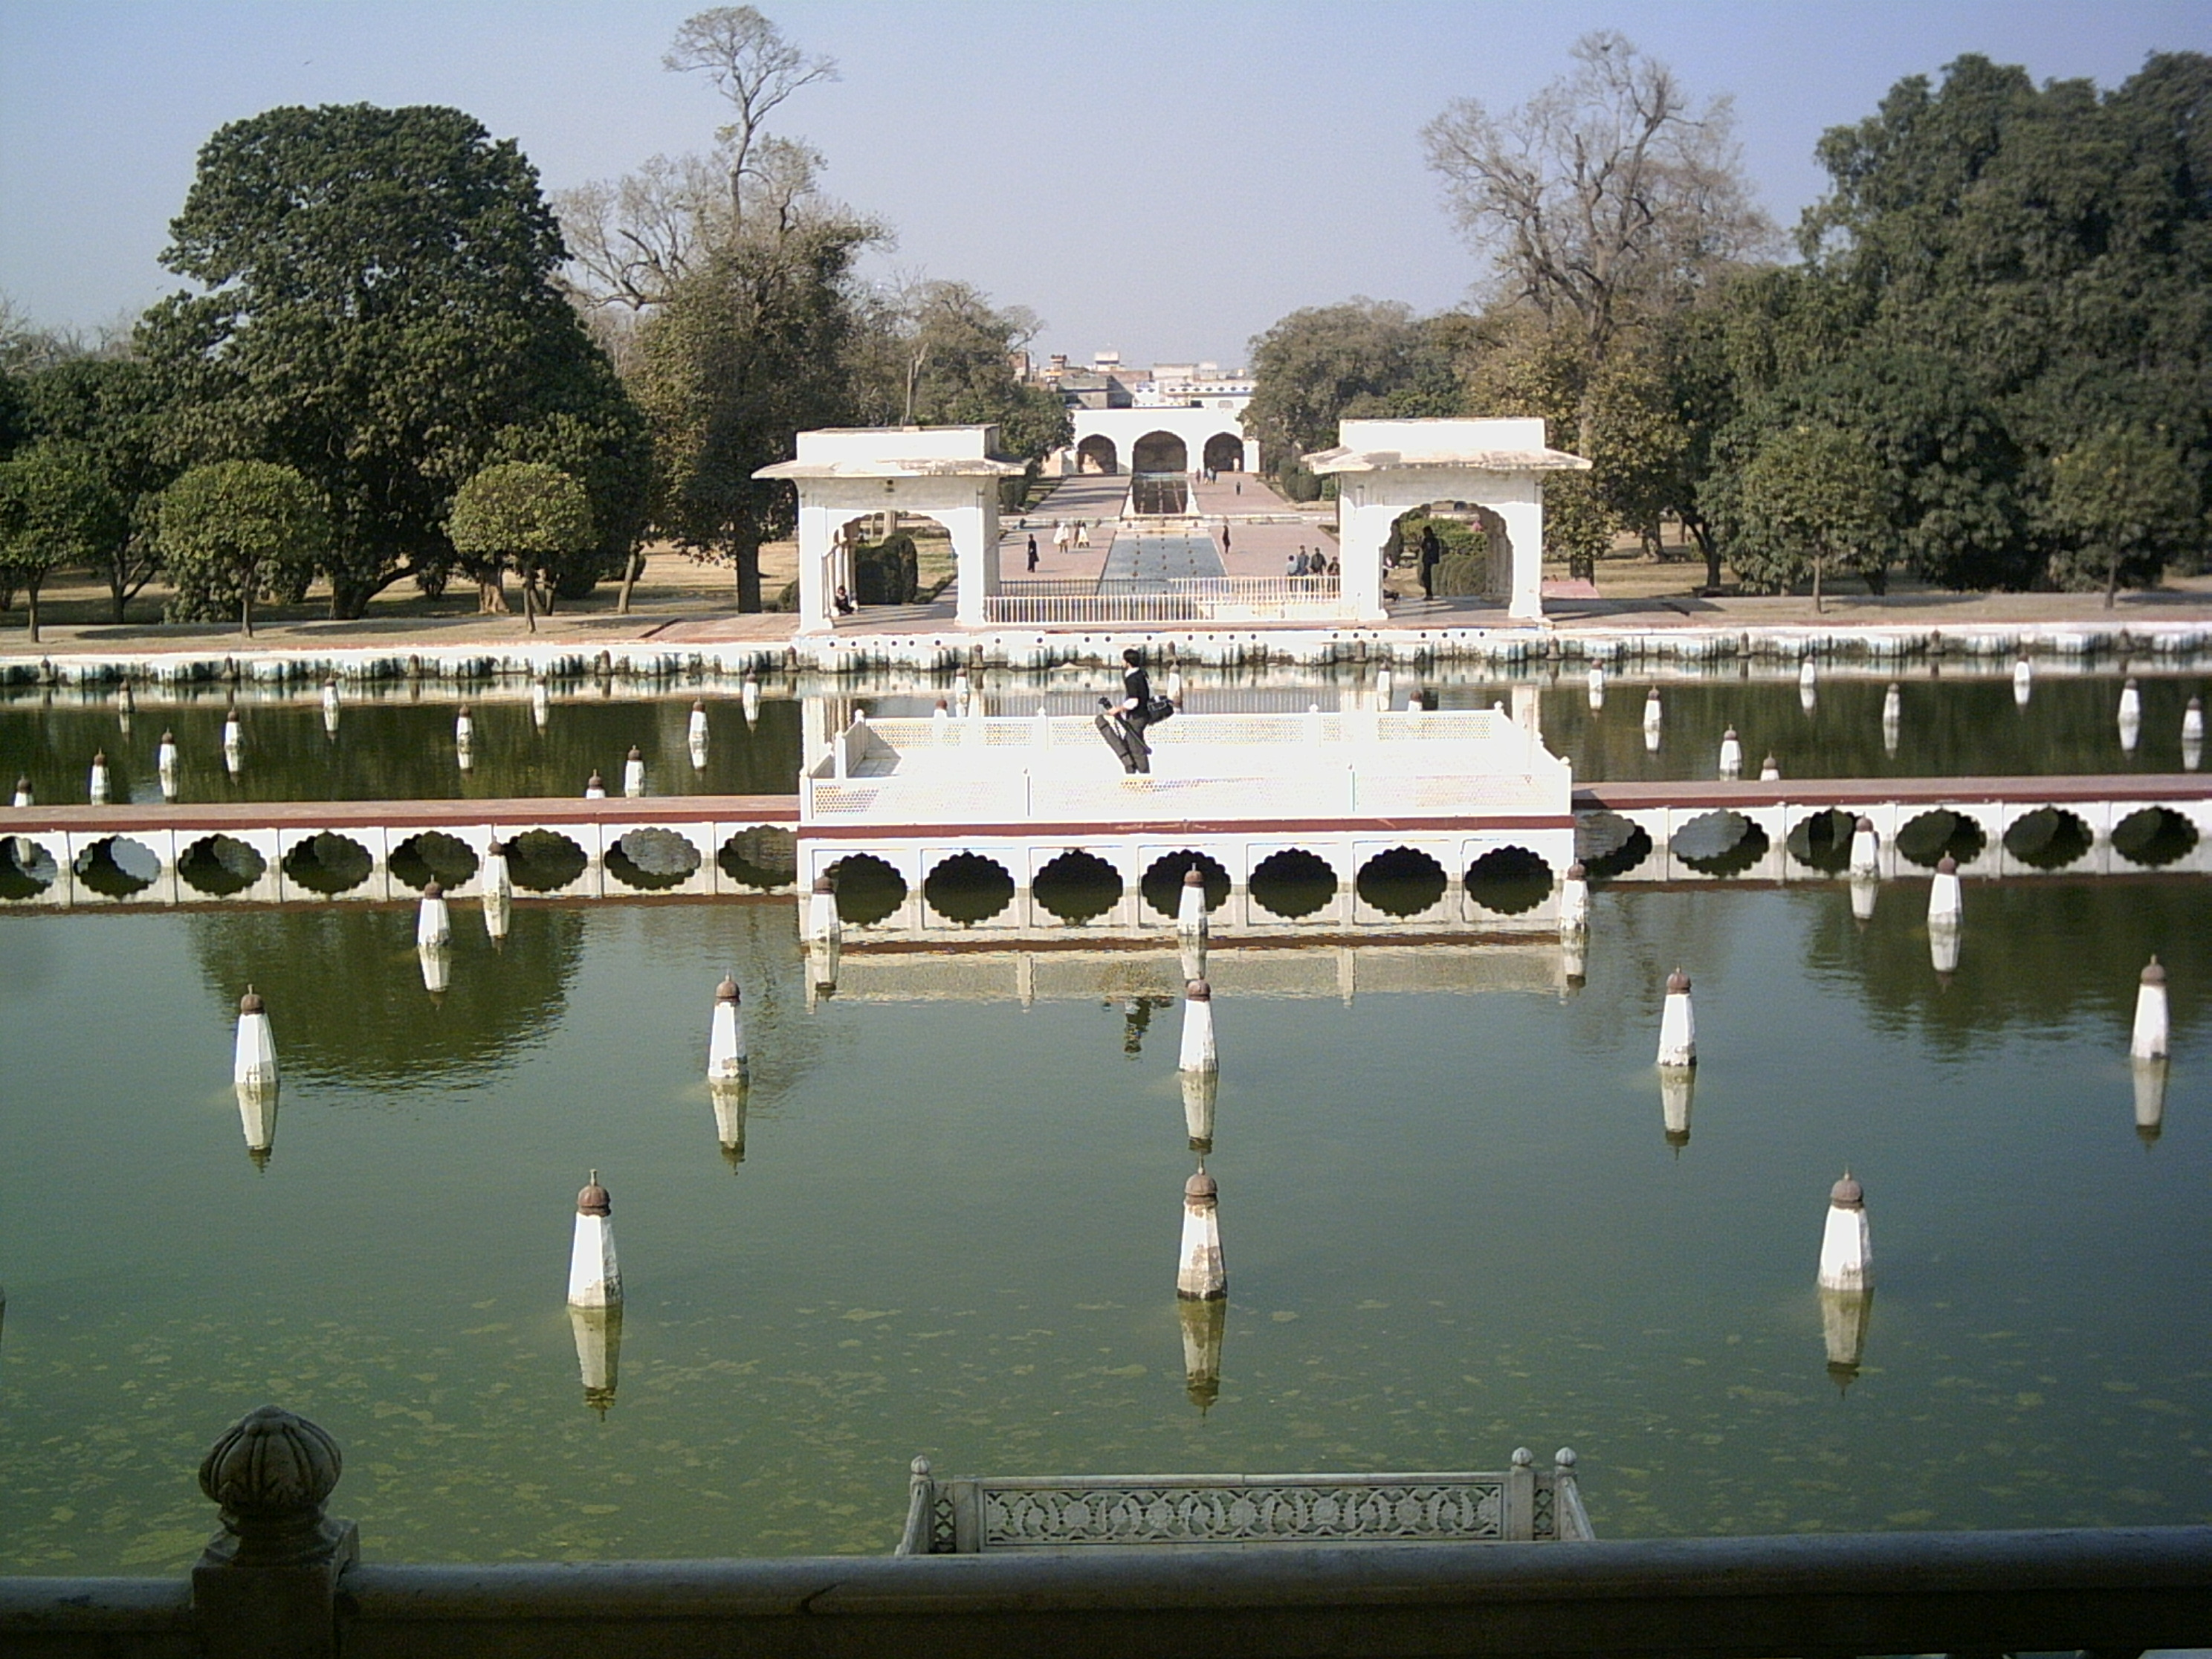 Shalimar Gardens, Lahore built by the Mughal emperor Aurangzeb.